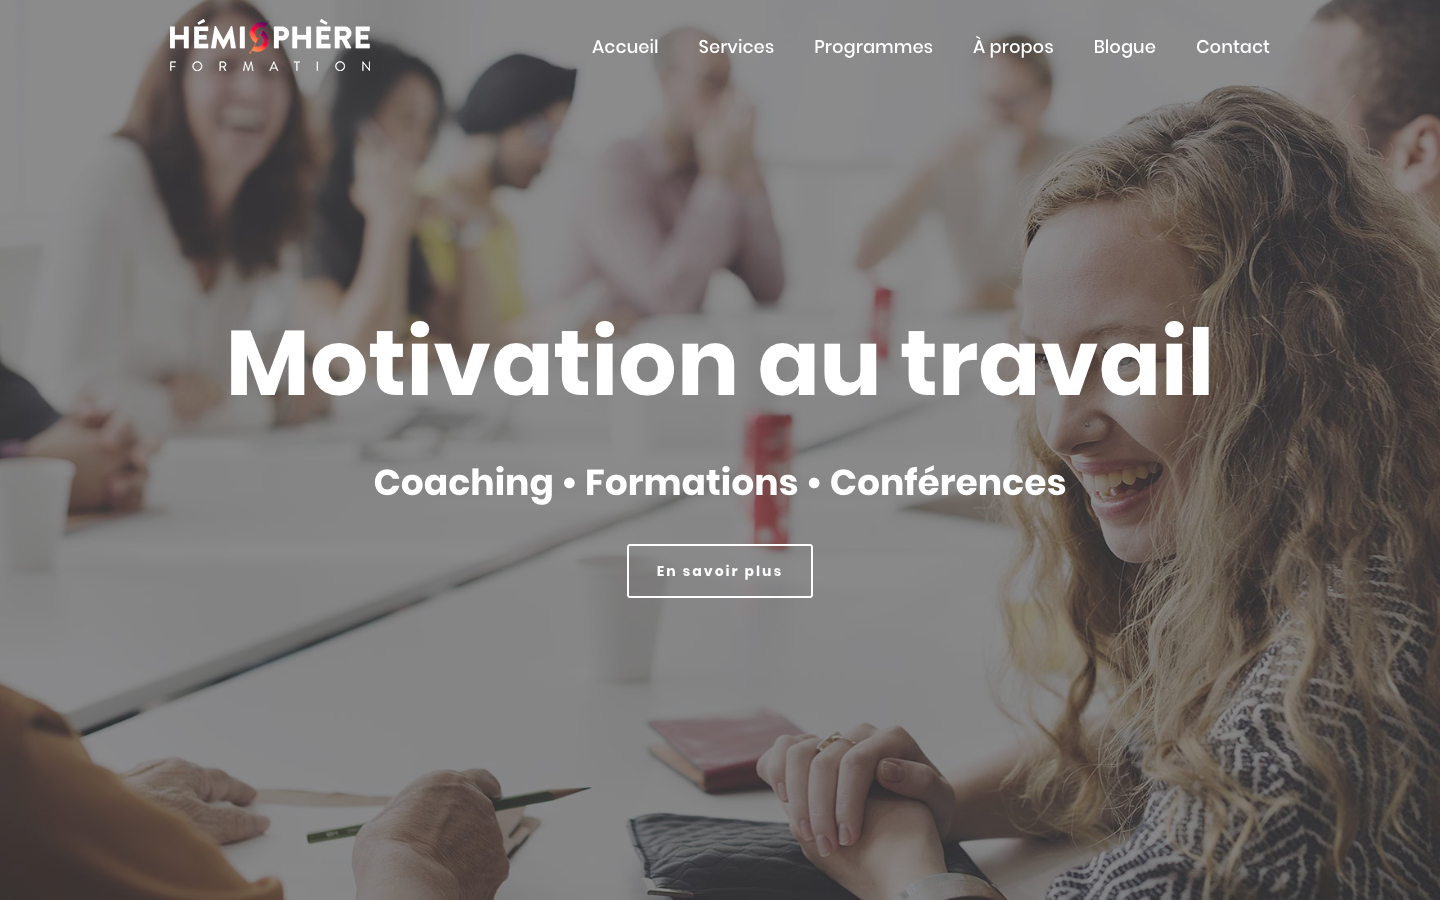 Hémisphère Formation par 3leadership Marketing web pour PME